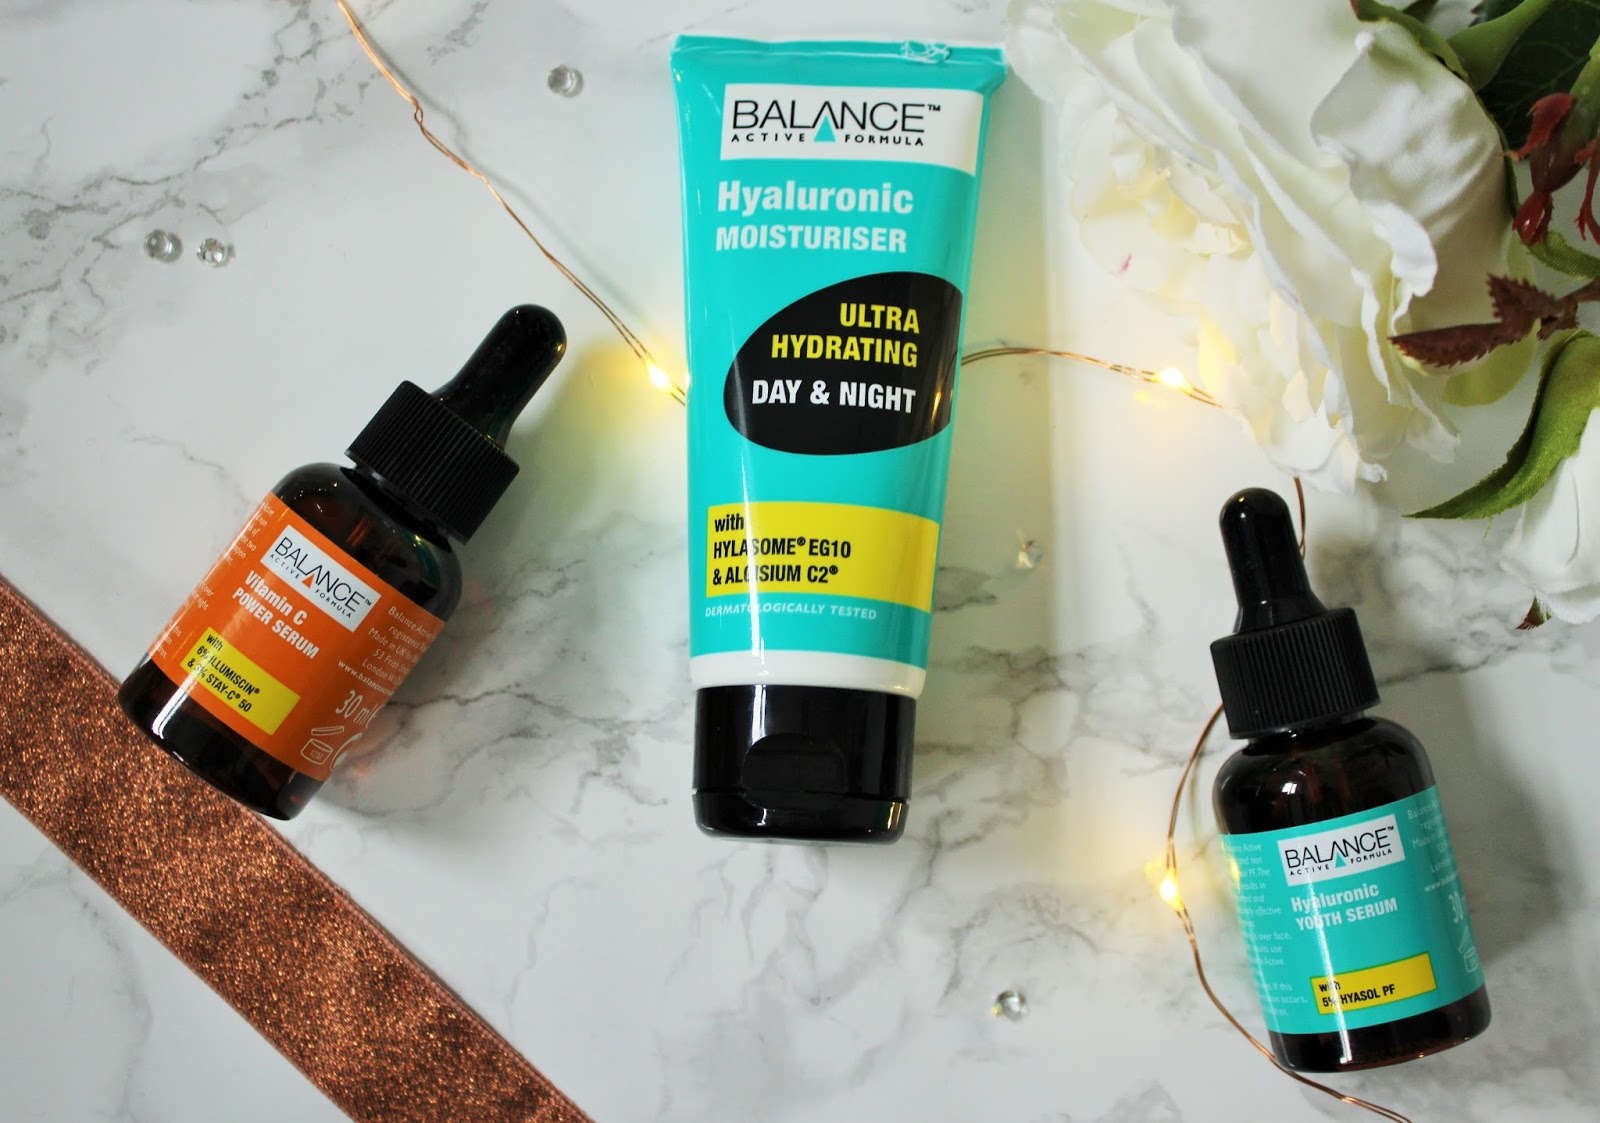 Balance Active Formula Skincare Review - 2